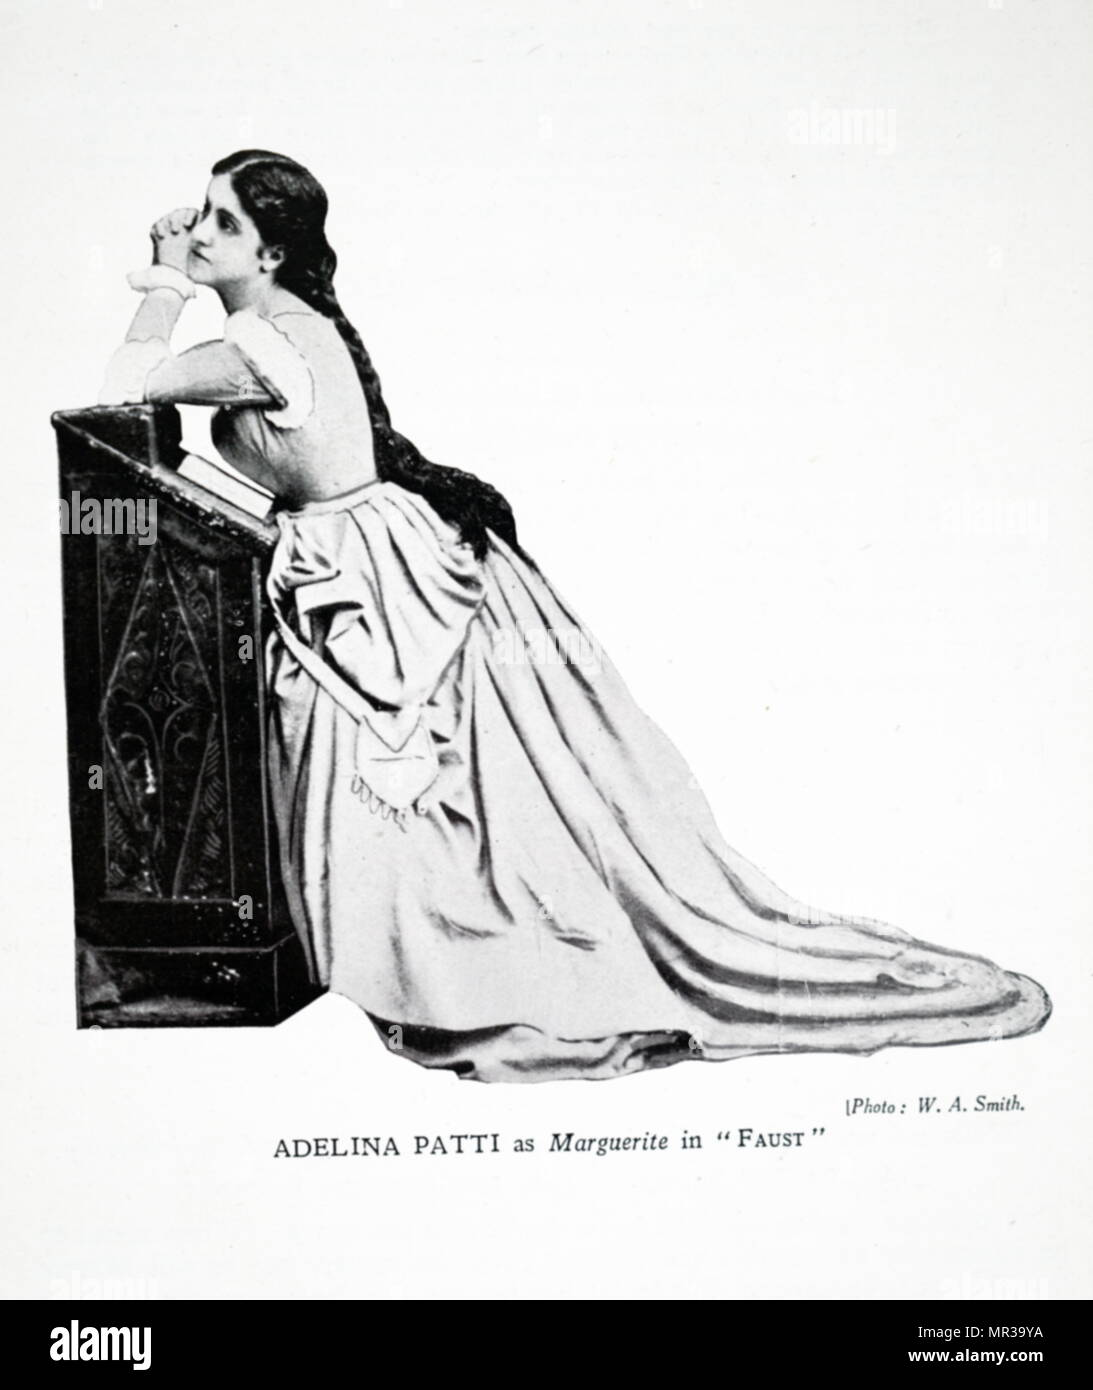 Photograph of Adelina Patti as Marguerite in 'Faust'. Adelina Patti (1843-1919) an Italian-French opera singer. Dated 19th century - Stock Image